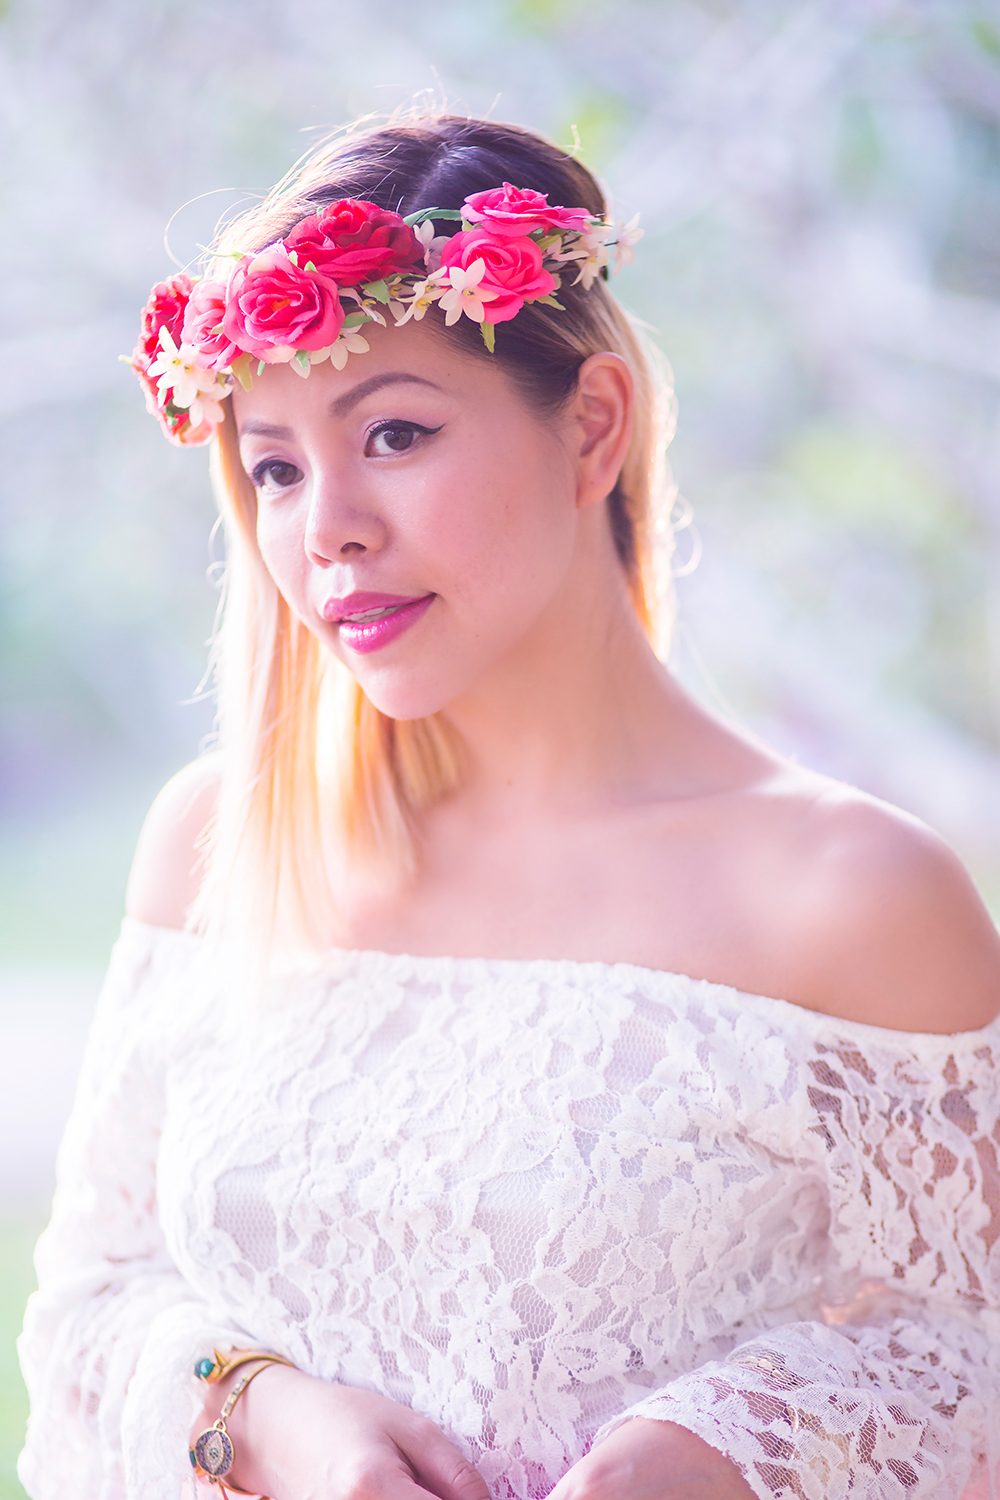 Crystal Phuong- Singapore Fashion Blog- Dreamy in floral crown and off-shoulder lace top